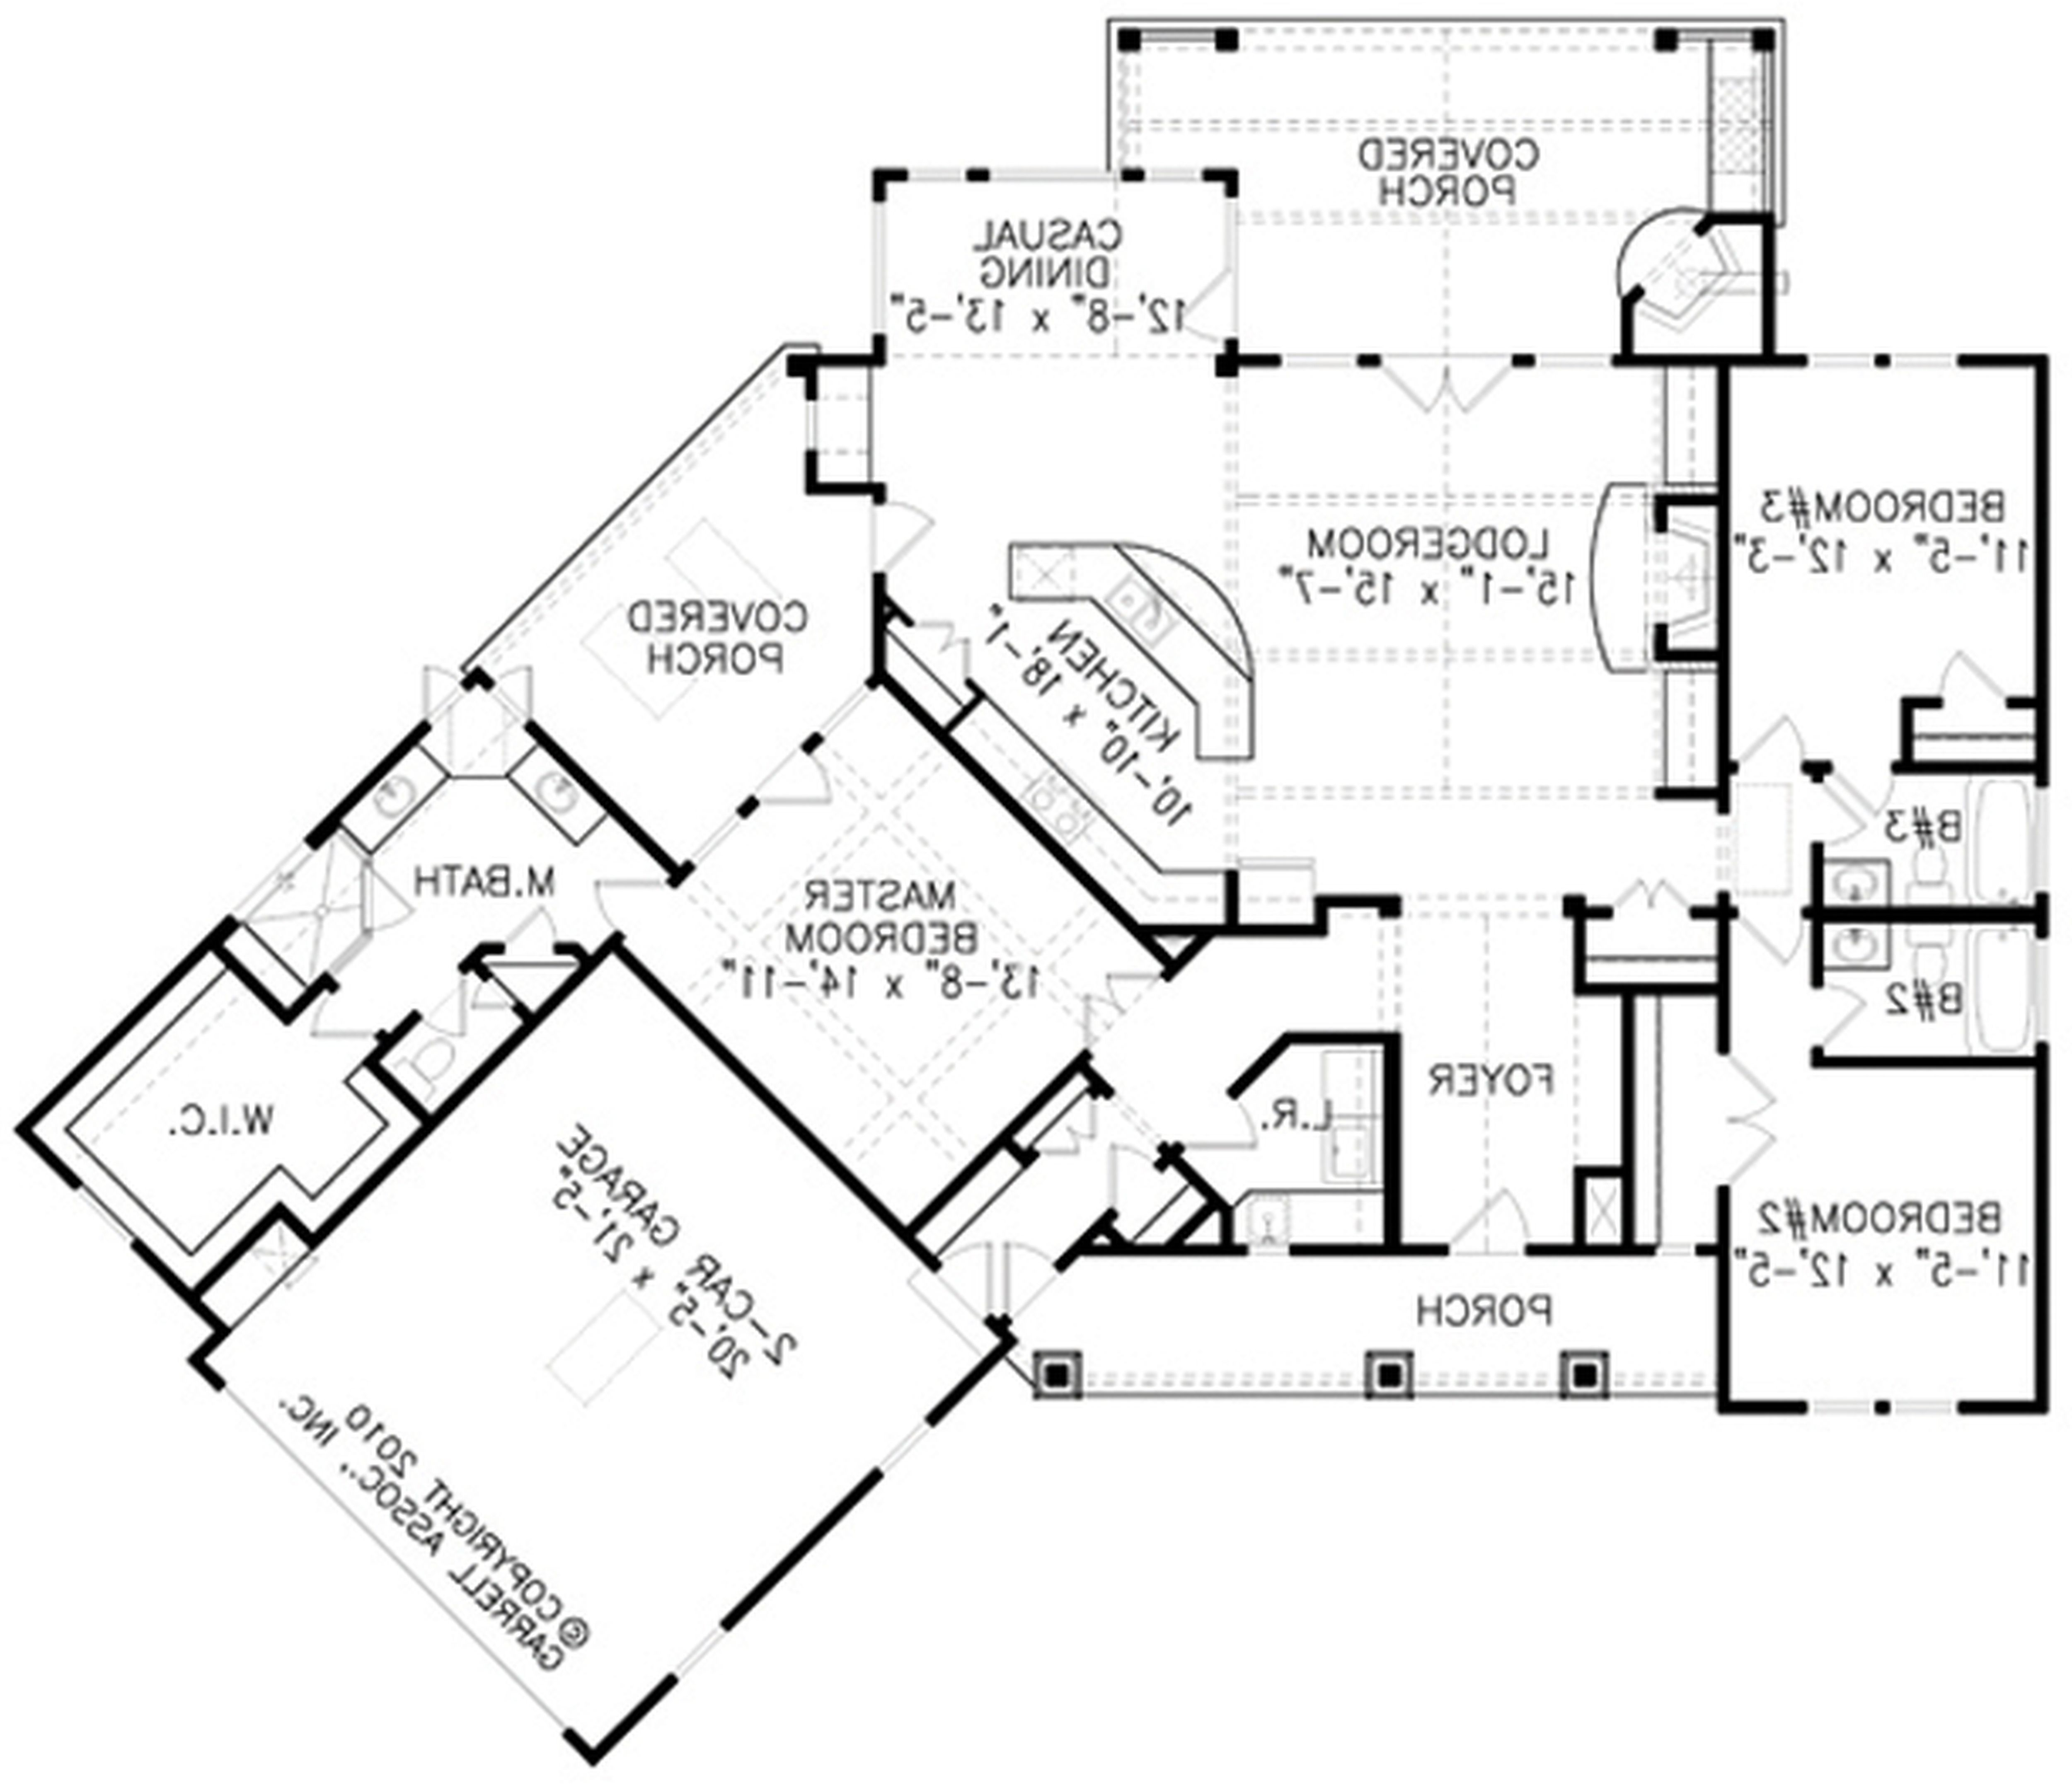 Alluring Small House Ideas Style Excellent House Interior Design Unique House Plans Floor Plan Design House Plans One Story